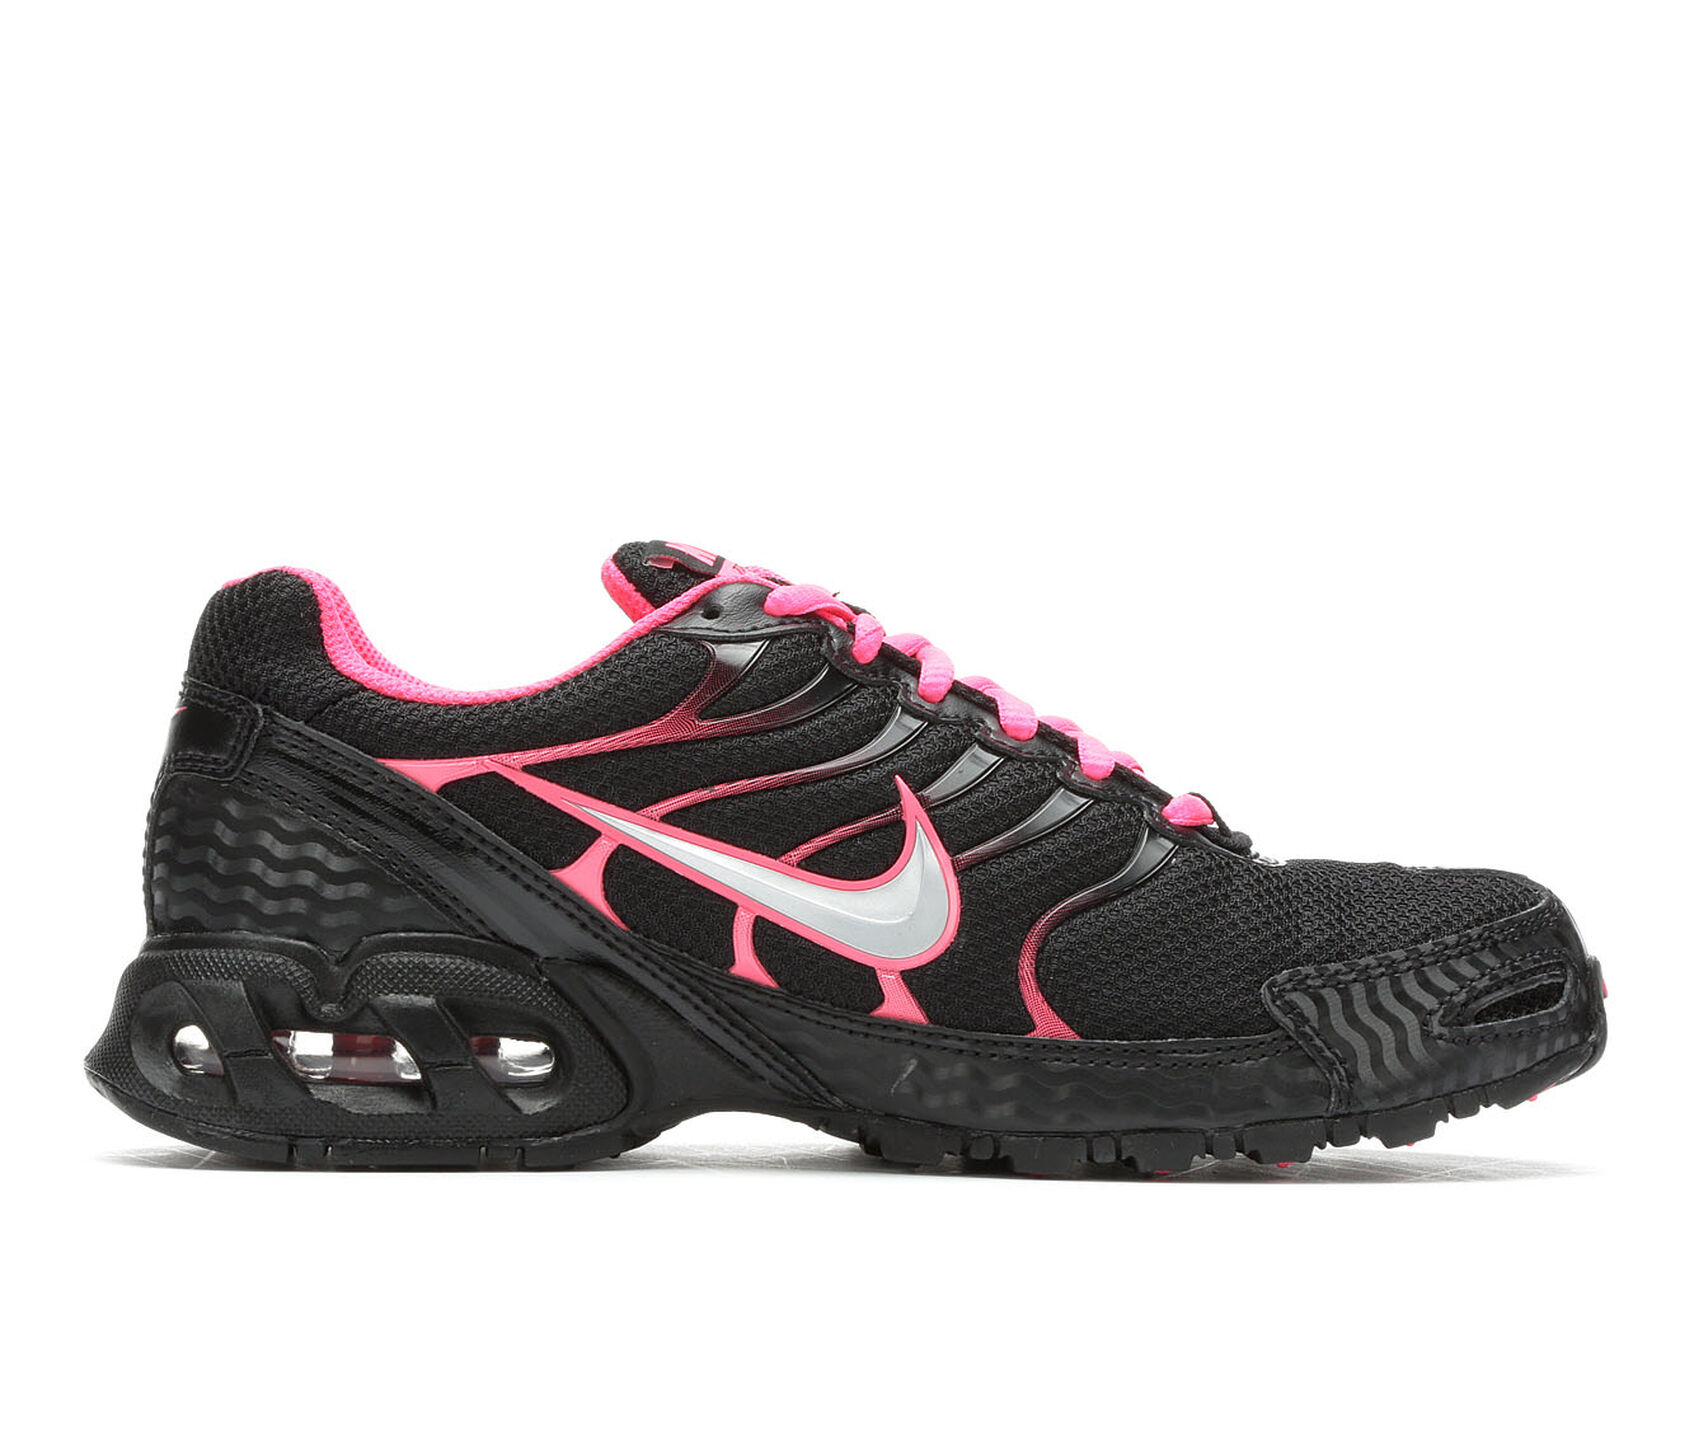 f013aefabe4 Women's Nike Air Max Torch 4 Running Shoes